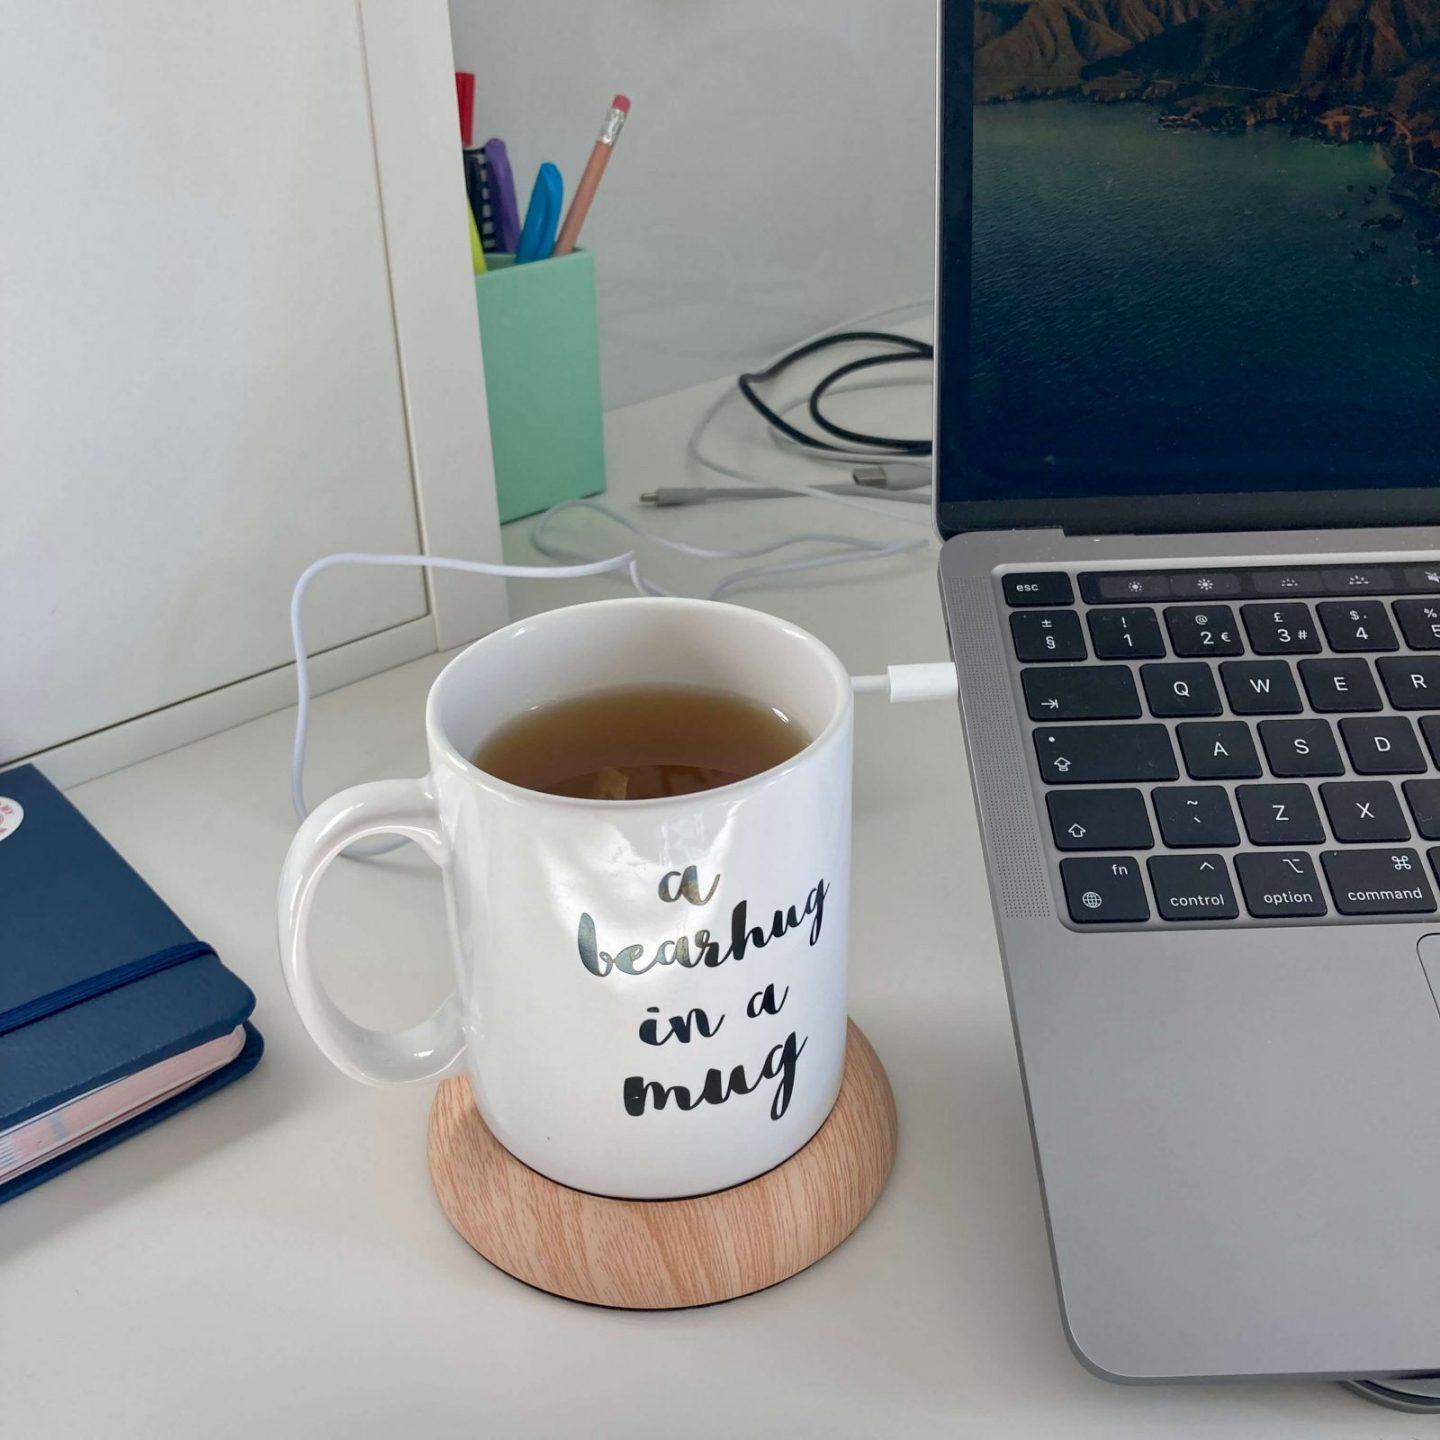 a small white mug containing green tea positioned on a USB mug warmer plugged into pippa's laptop. the mug warmer is light brown and has a pine-like texture